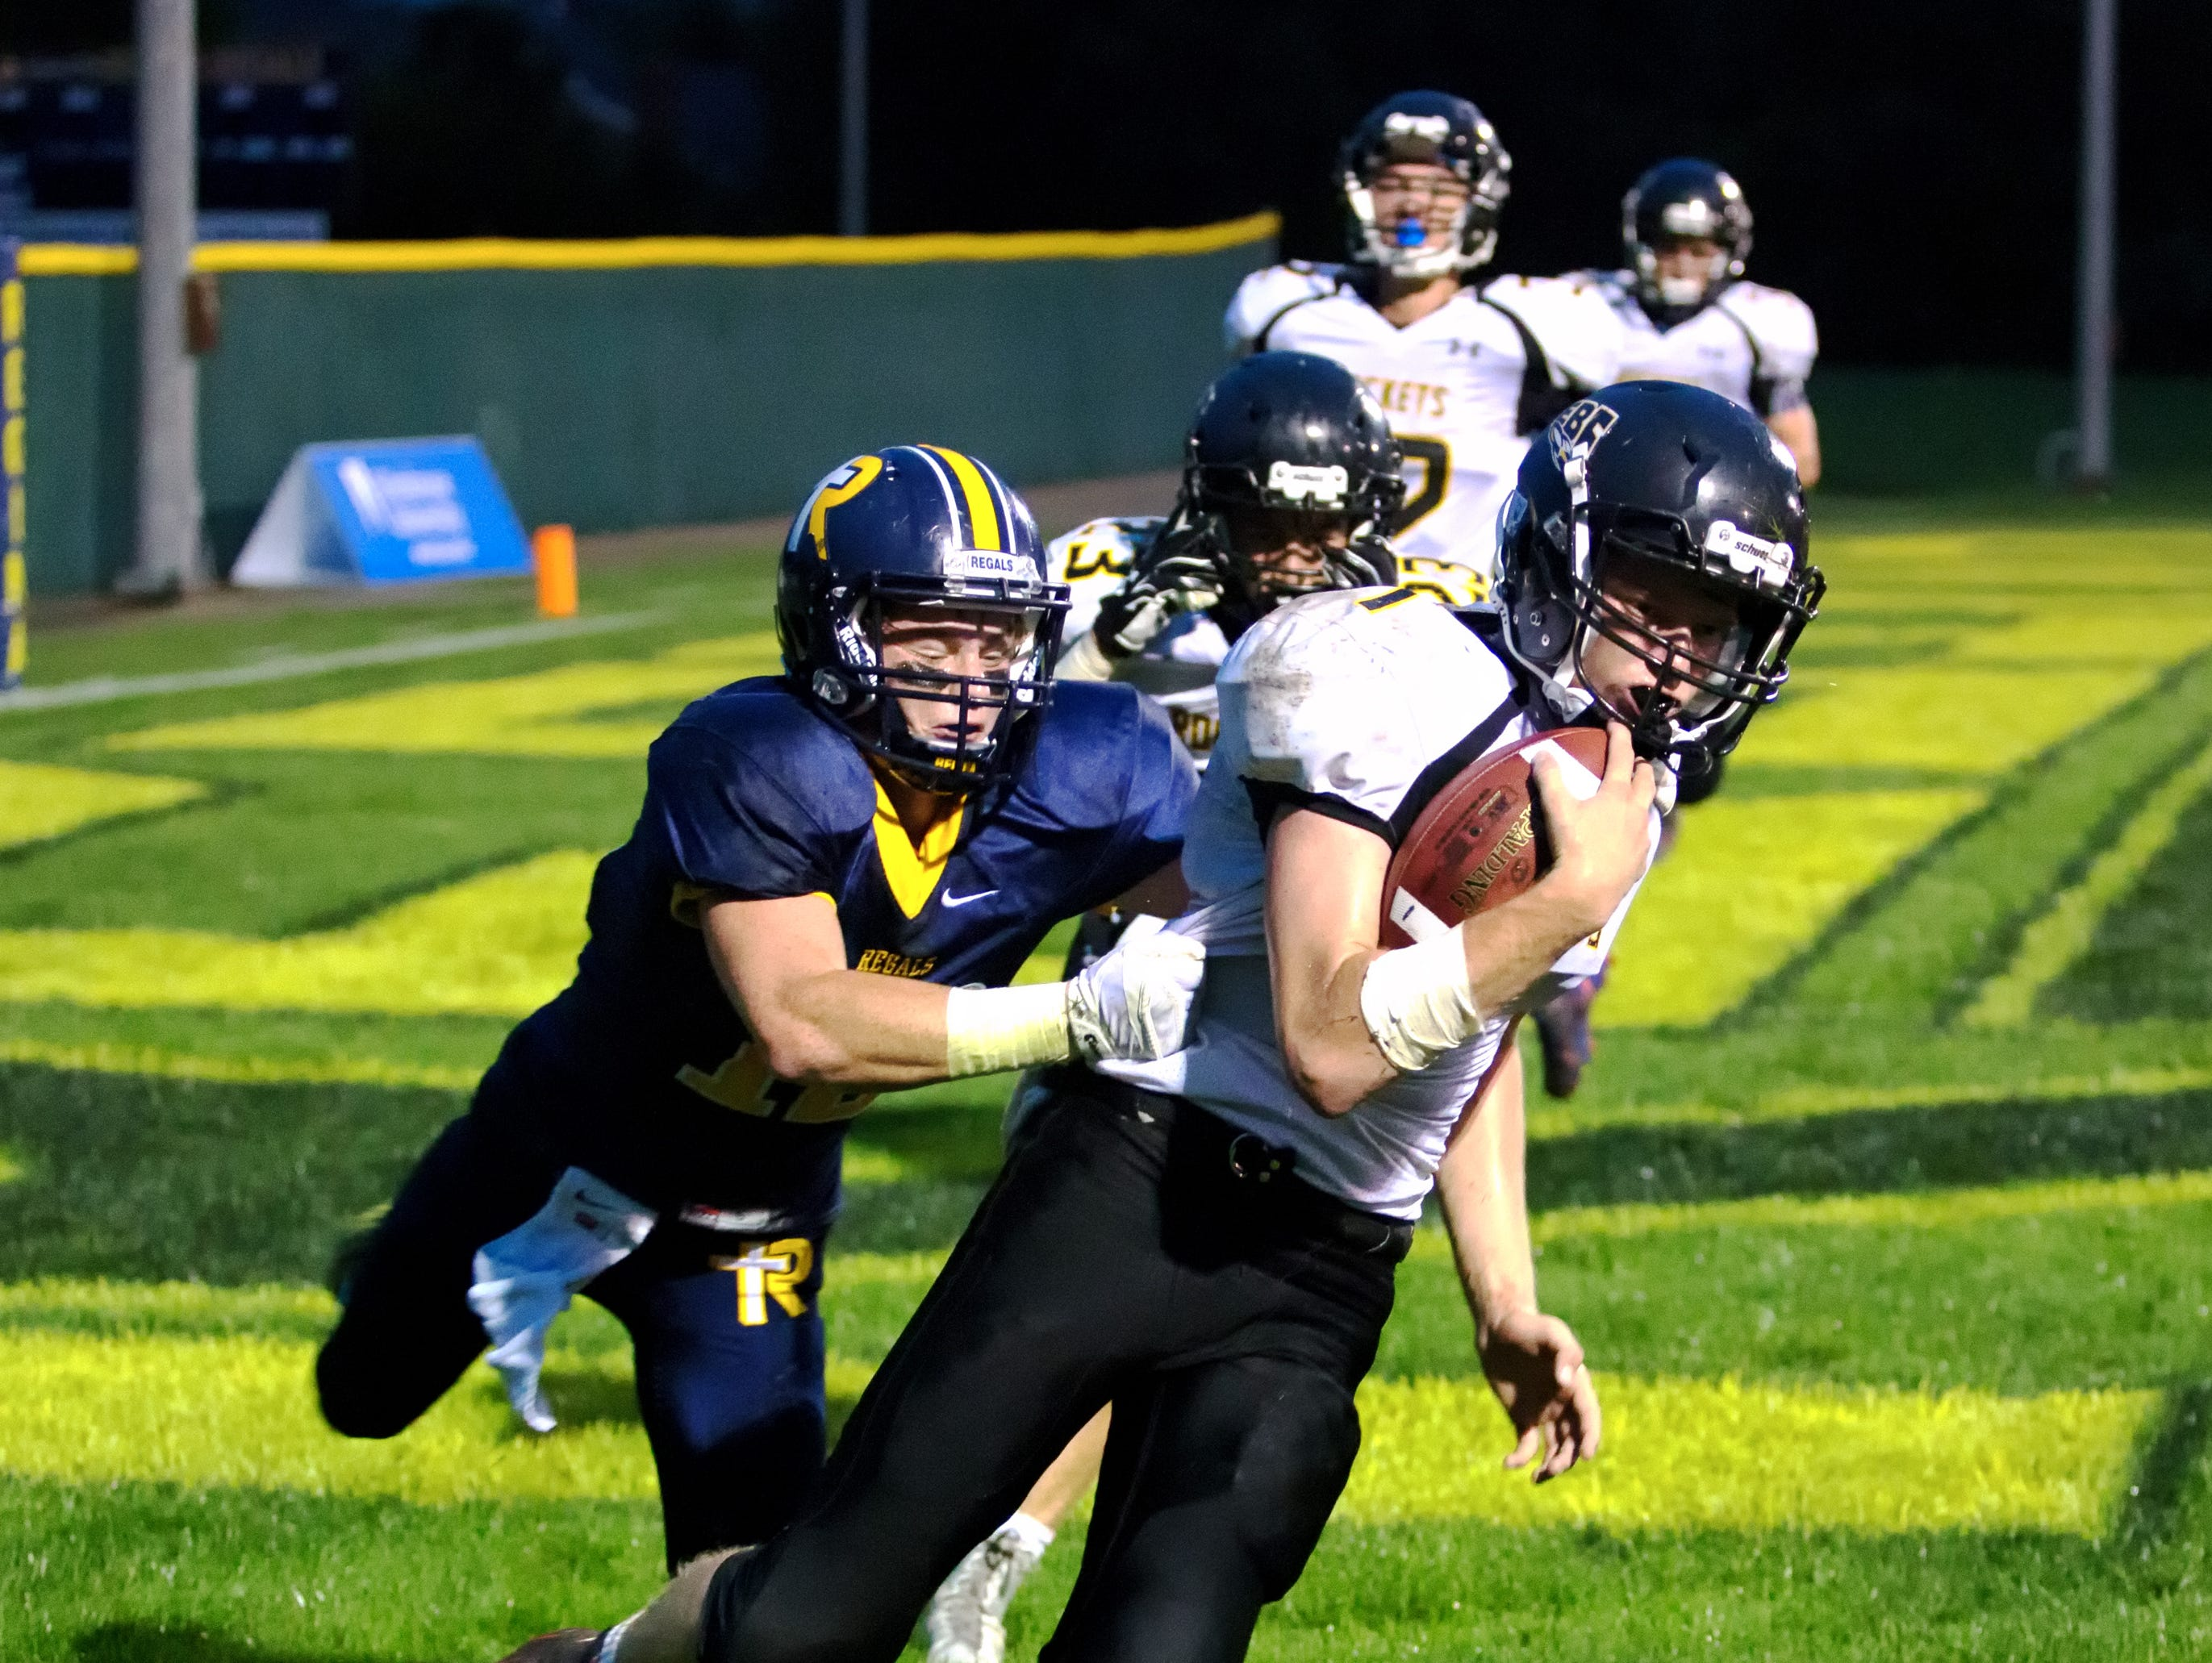 Class 1A top-ranked Regina's Ethan Suchomel tackles Eddyville-Blakesburg-Fremont's Ryan Adams for a safety on Sept. 18. The Regals travels to Highland for a 7 p.m. matchup on Friday.